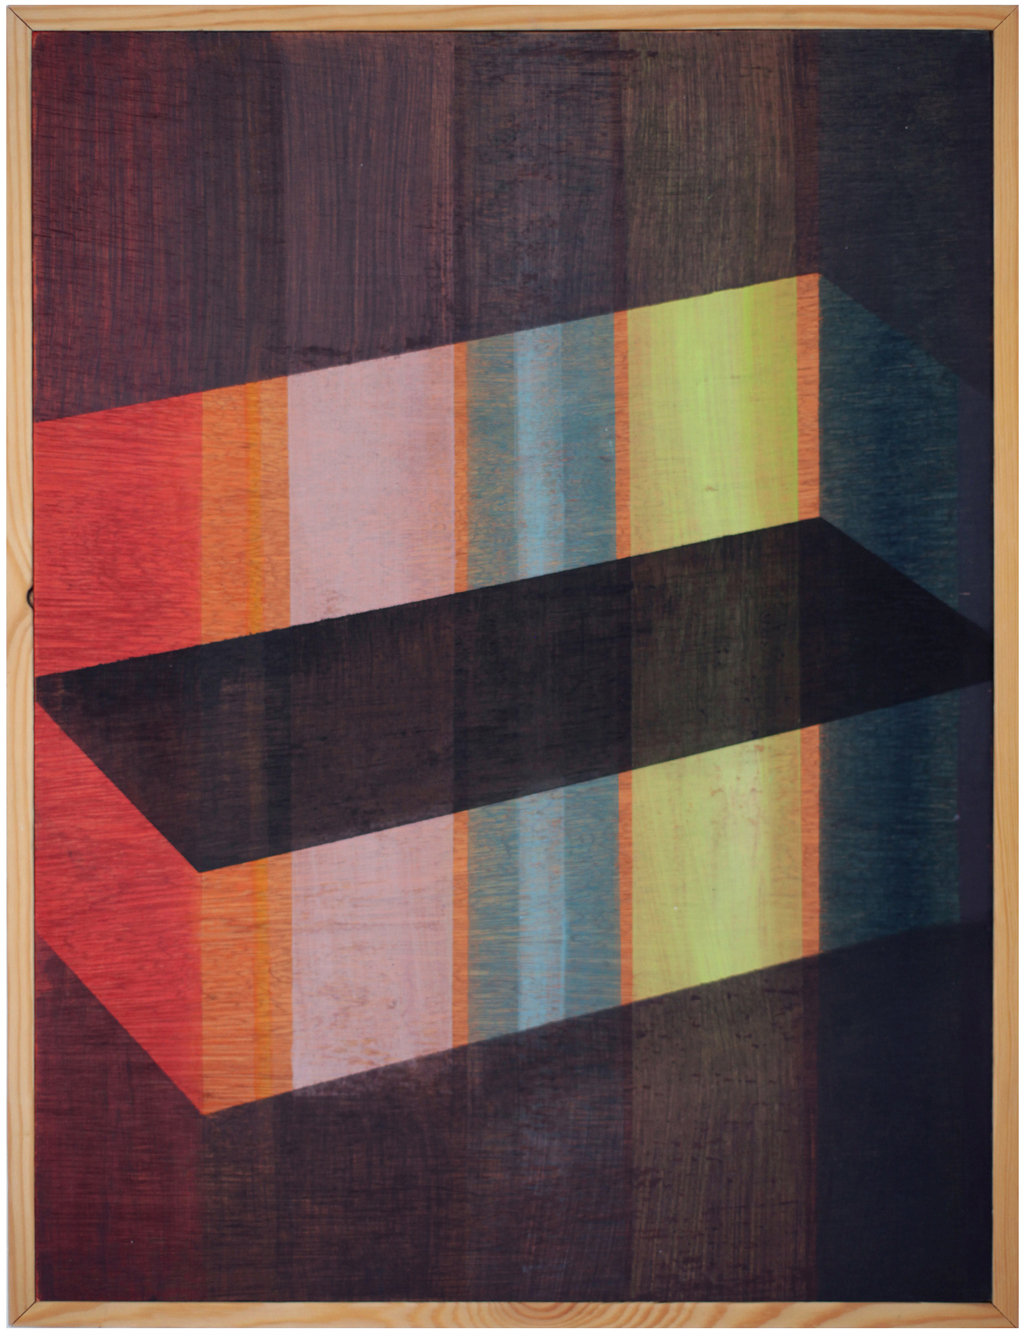 'Inside/Outside', 2014, oil paint and linseed oil on marine ply, 30 x 40 cm